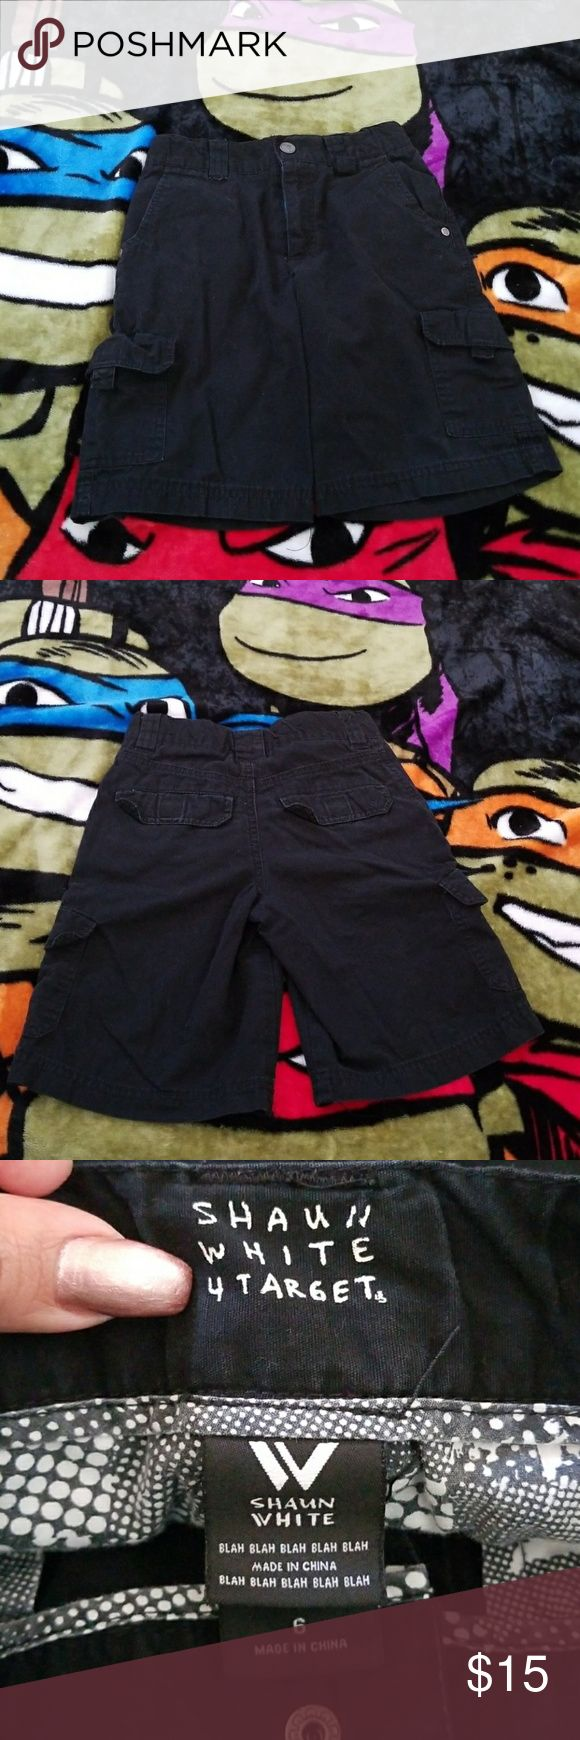 Boys Size 6 Shaun White black cargo shorts Boys Size 6 Shaun White full black cargo shorts with adjustable waist.  Lightweight and comfortable 100% cotton. Used but in excellent condition. Shaun White Bottoms Shorts